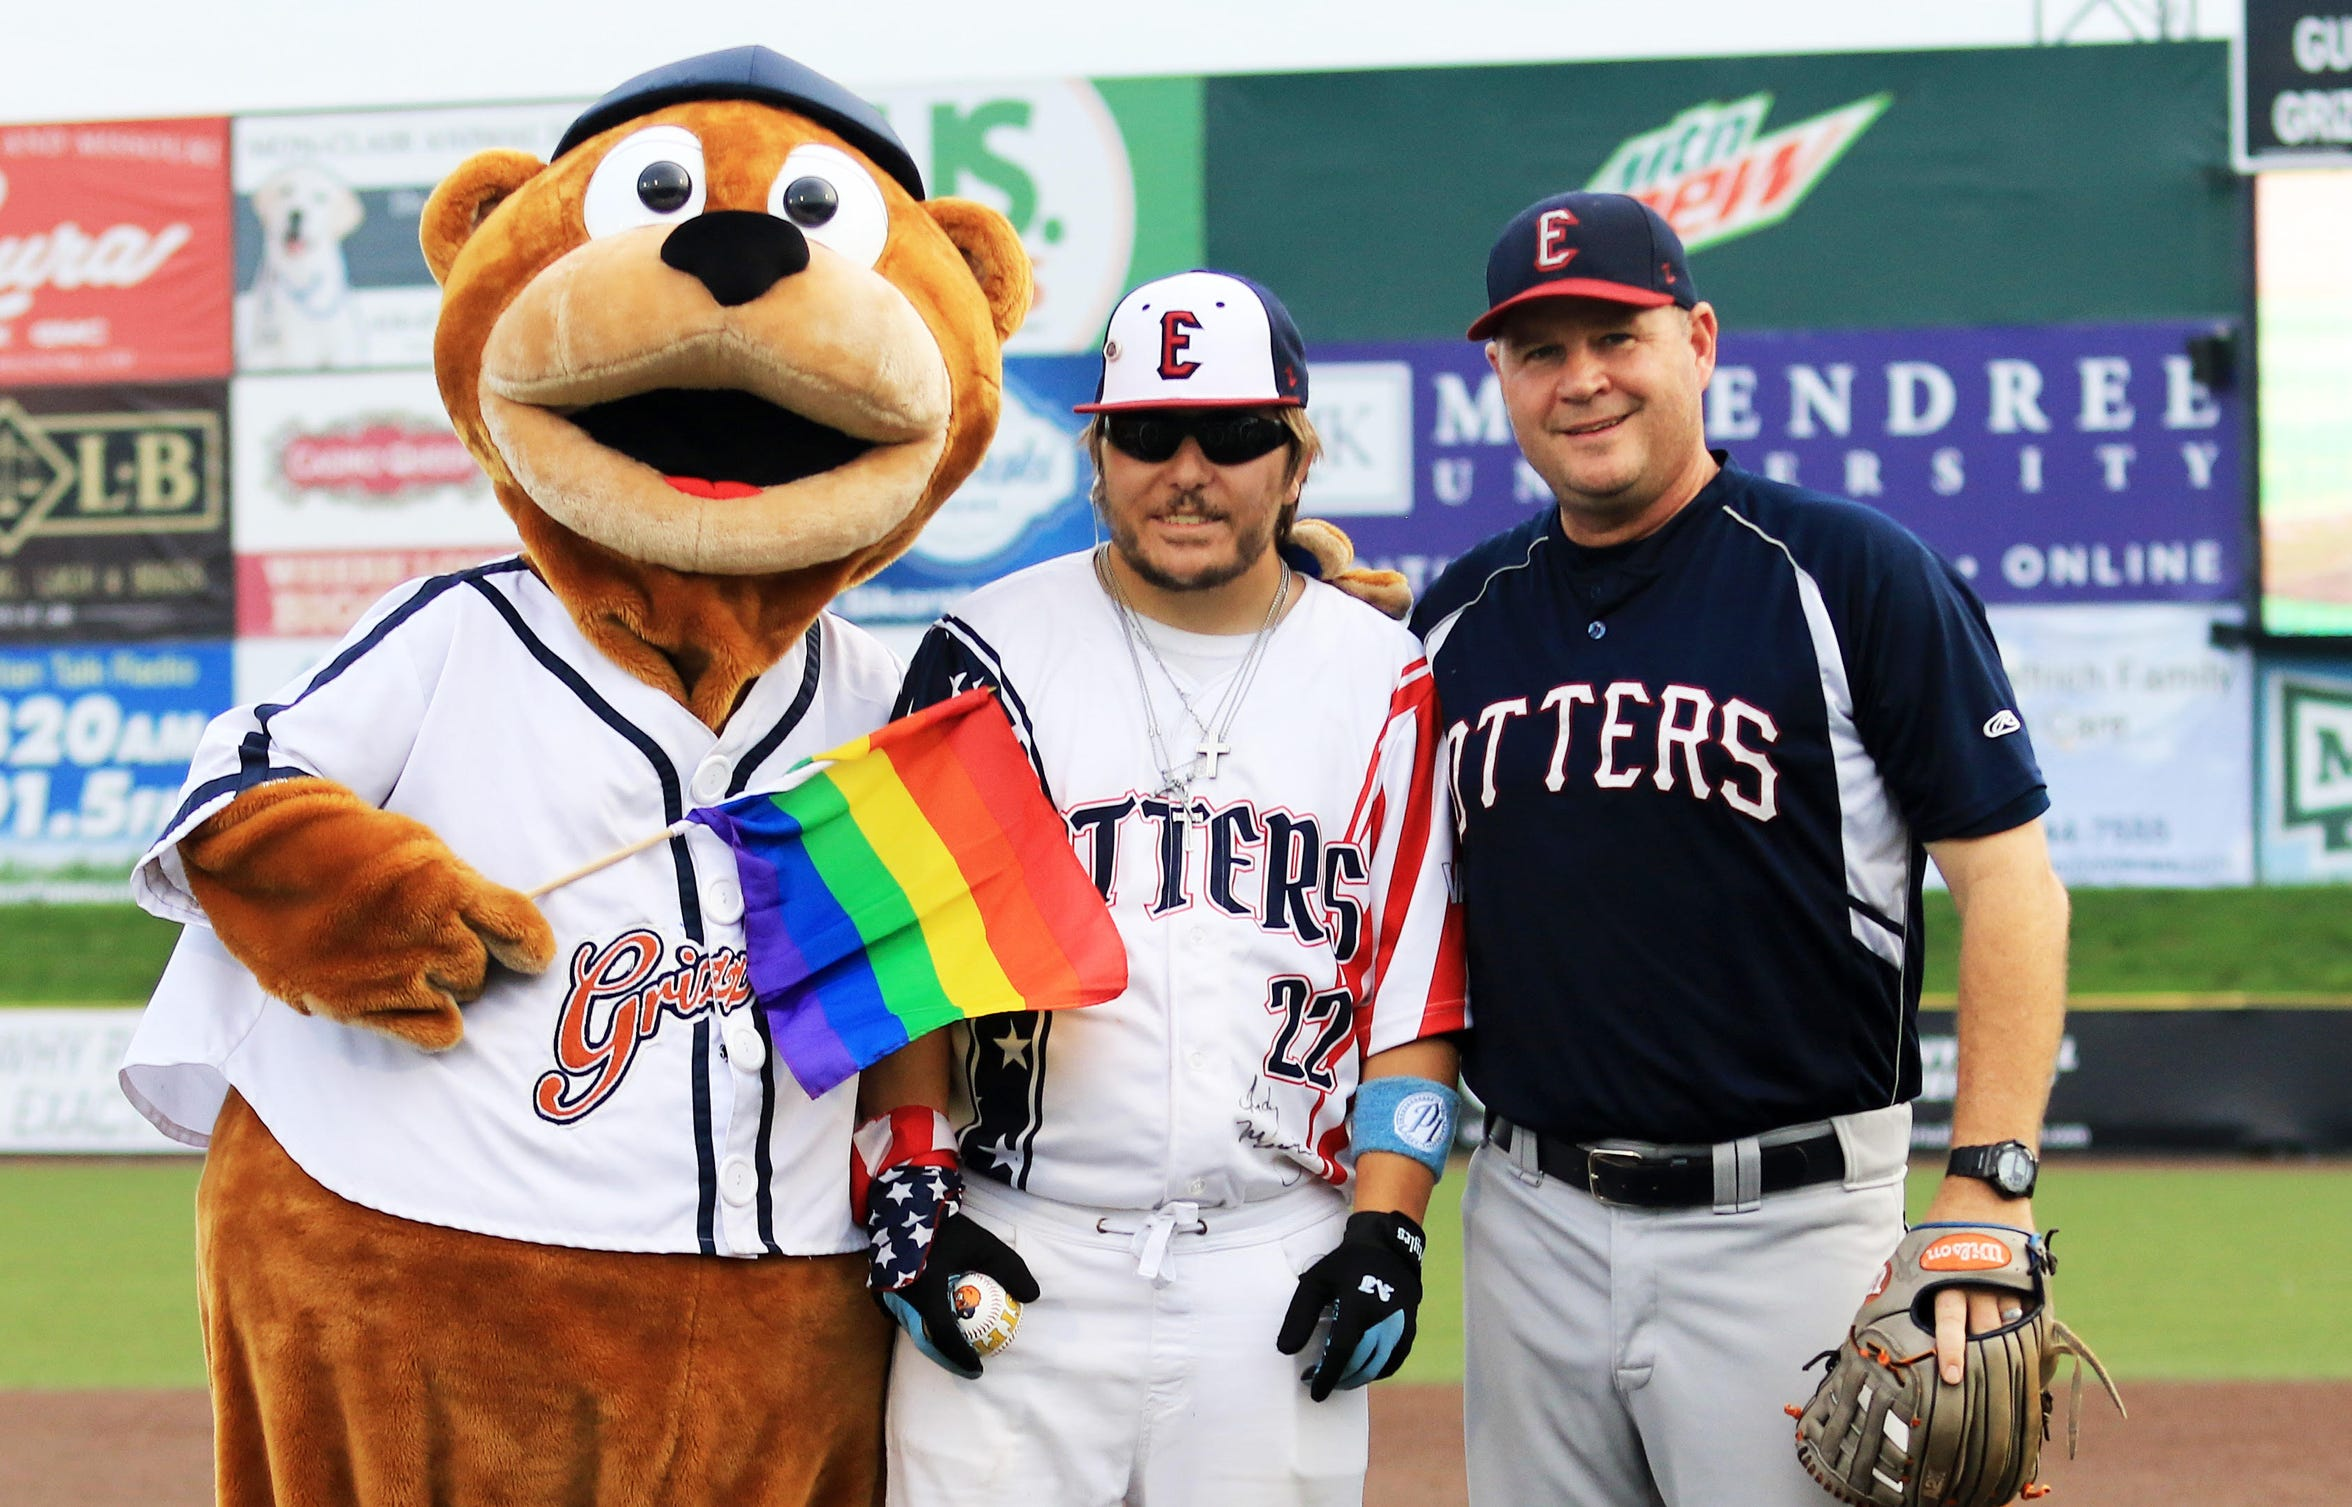 Evansville Otters' superfan Nick Drake (middle) poses with manager Andy McCauley and Izzy the Grizzlie after throwing out the first pitch at a Gateway Grizzlies' game in late August.